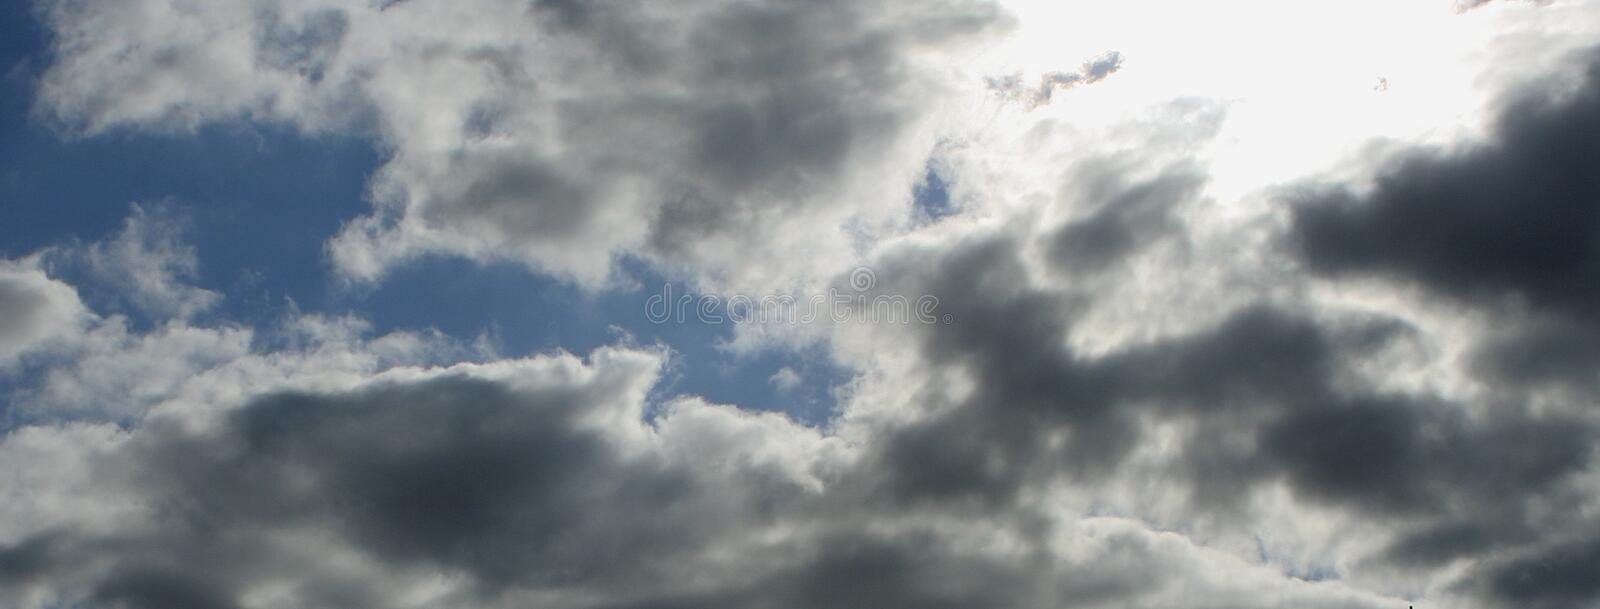 Blue sky with fluffy white and grey clouds, sun shining through stock photography